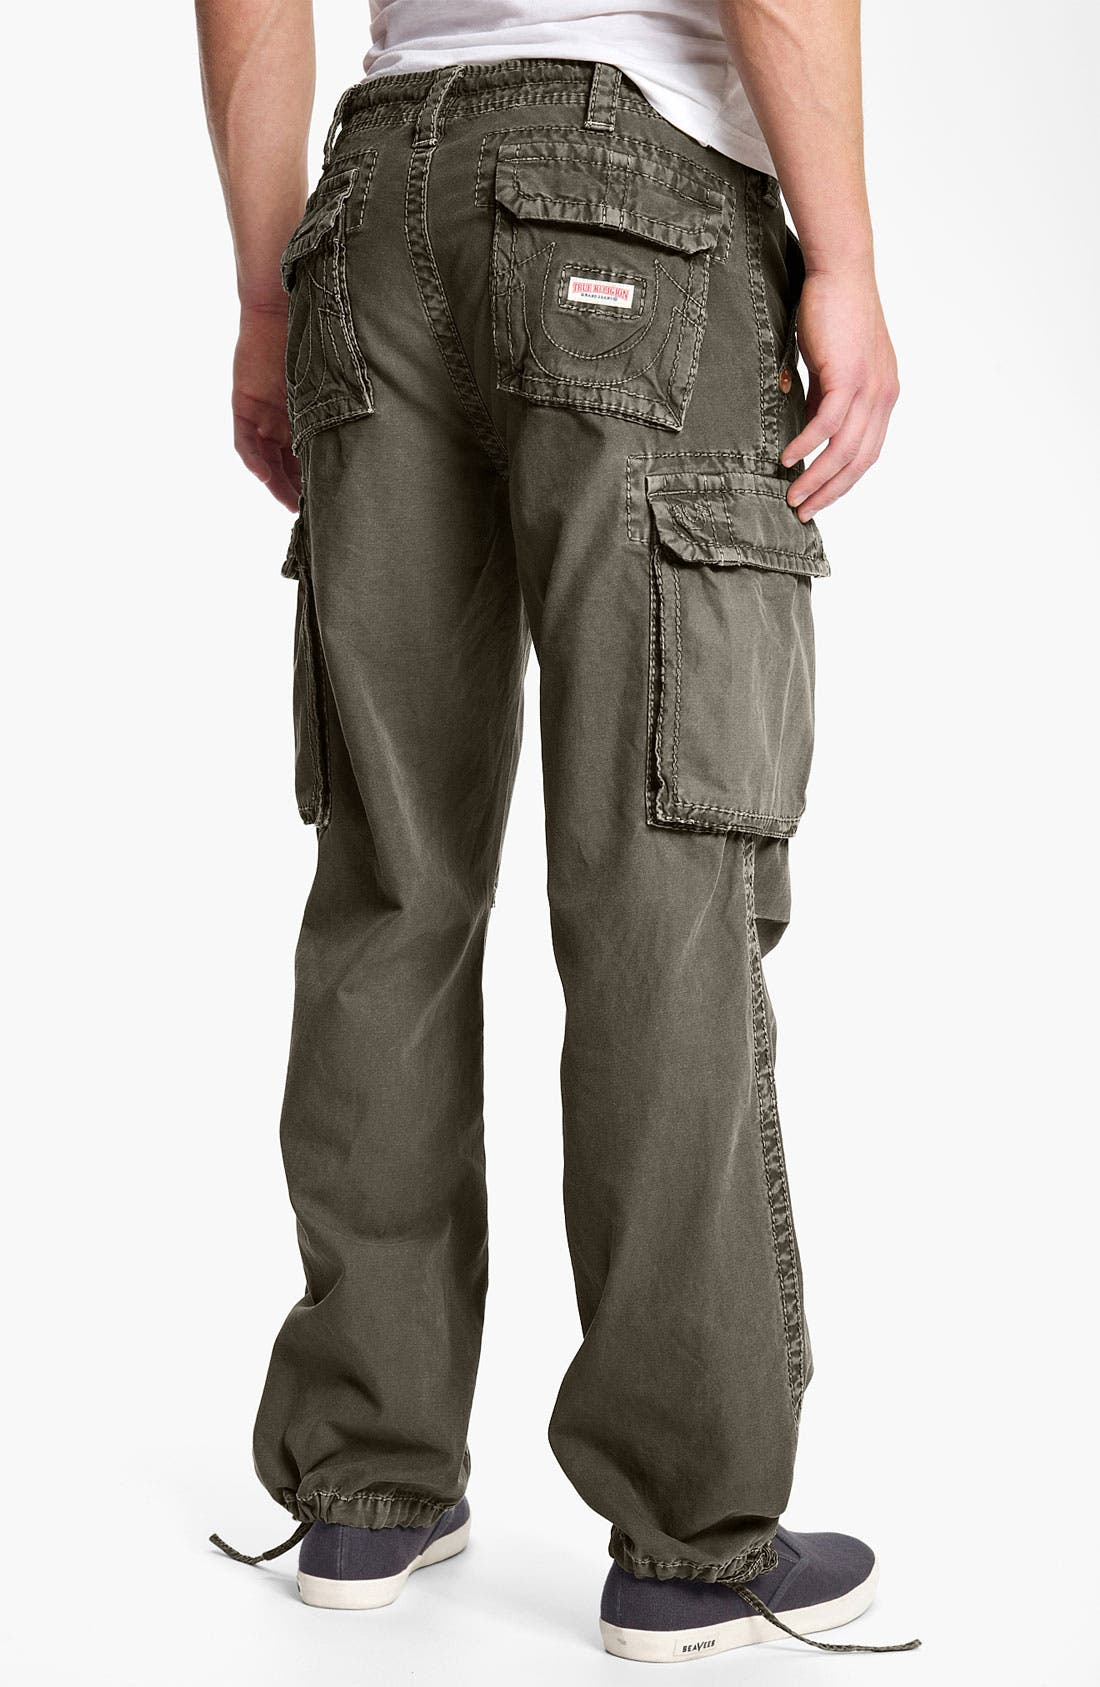 Main Image - True Religion Brand Jeans 'Anthony' Straight Leg Cargo Pants (Online Exclusive)